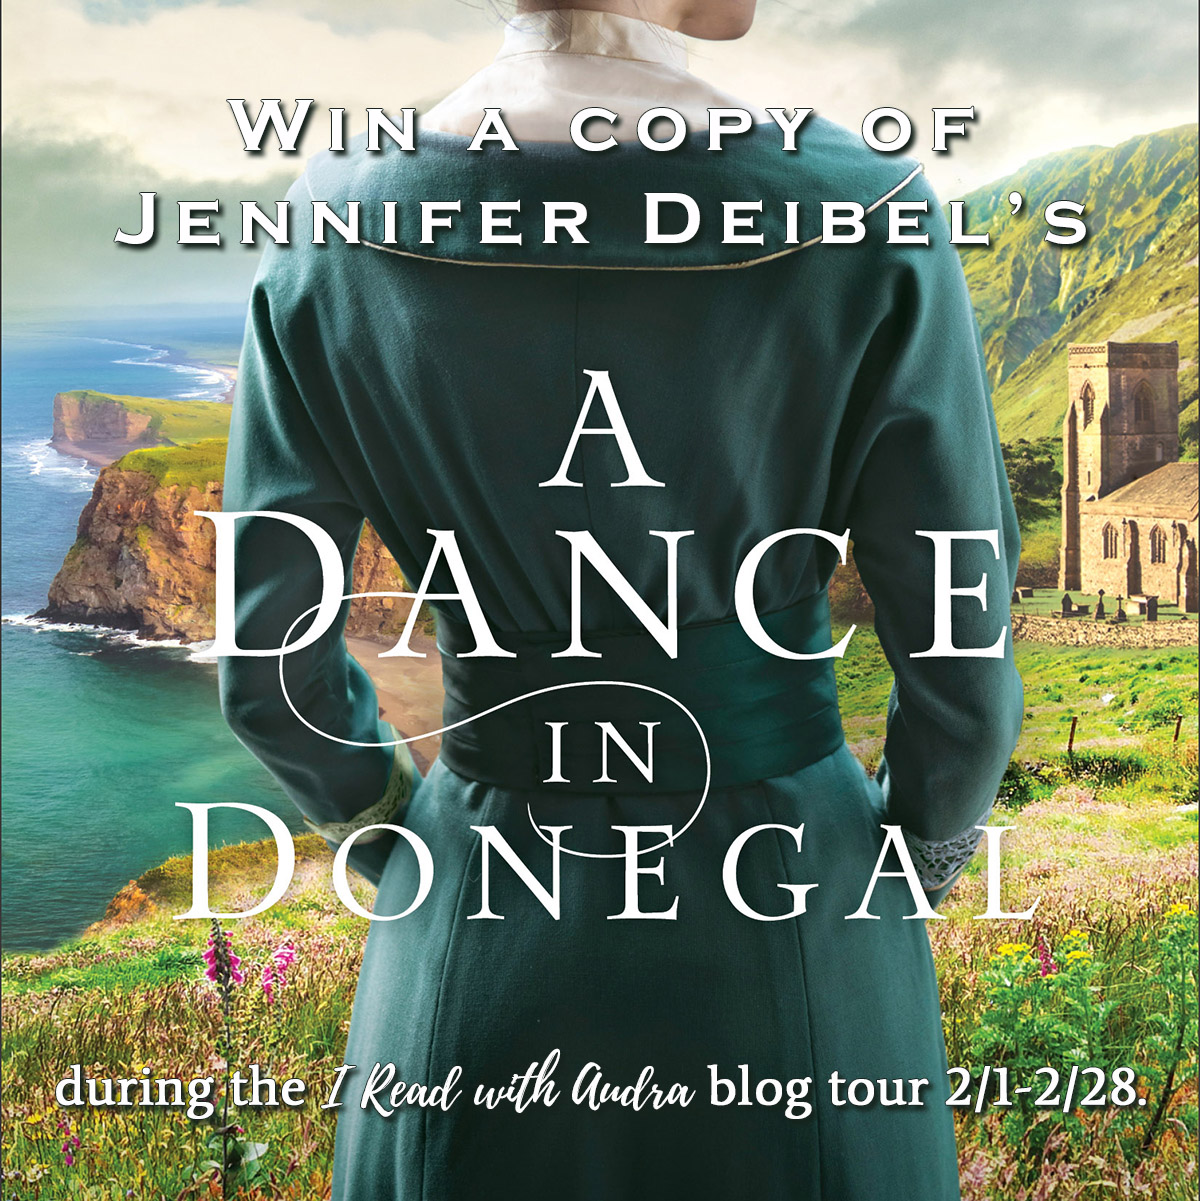 Win a copy of A Dance in Donegal